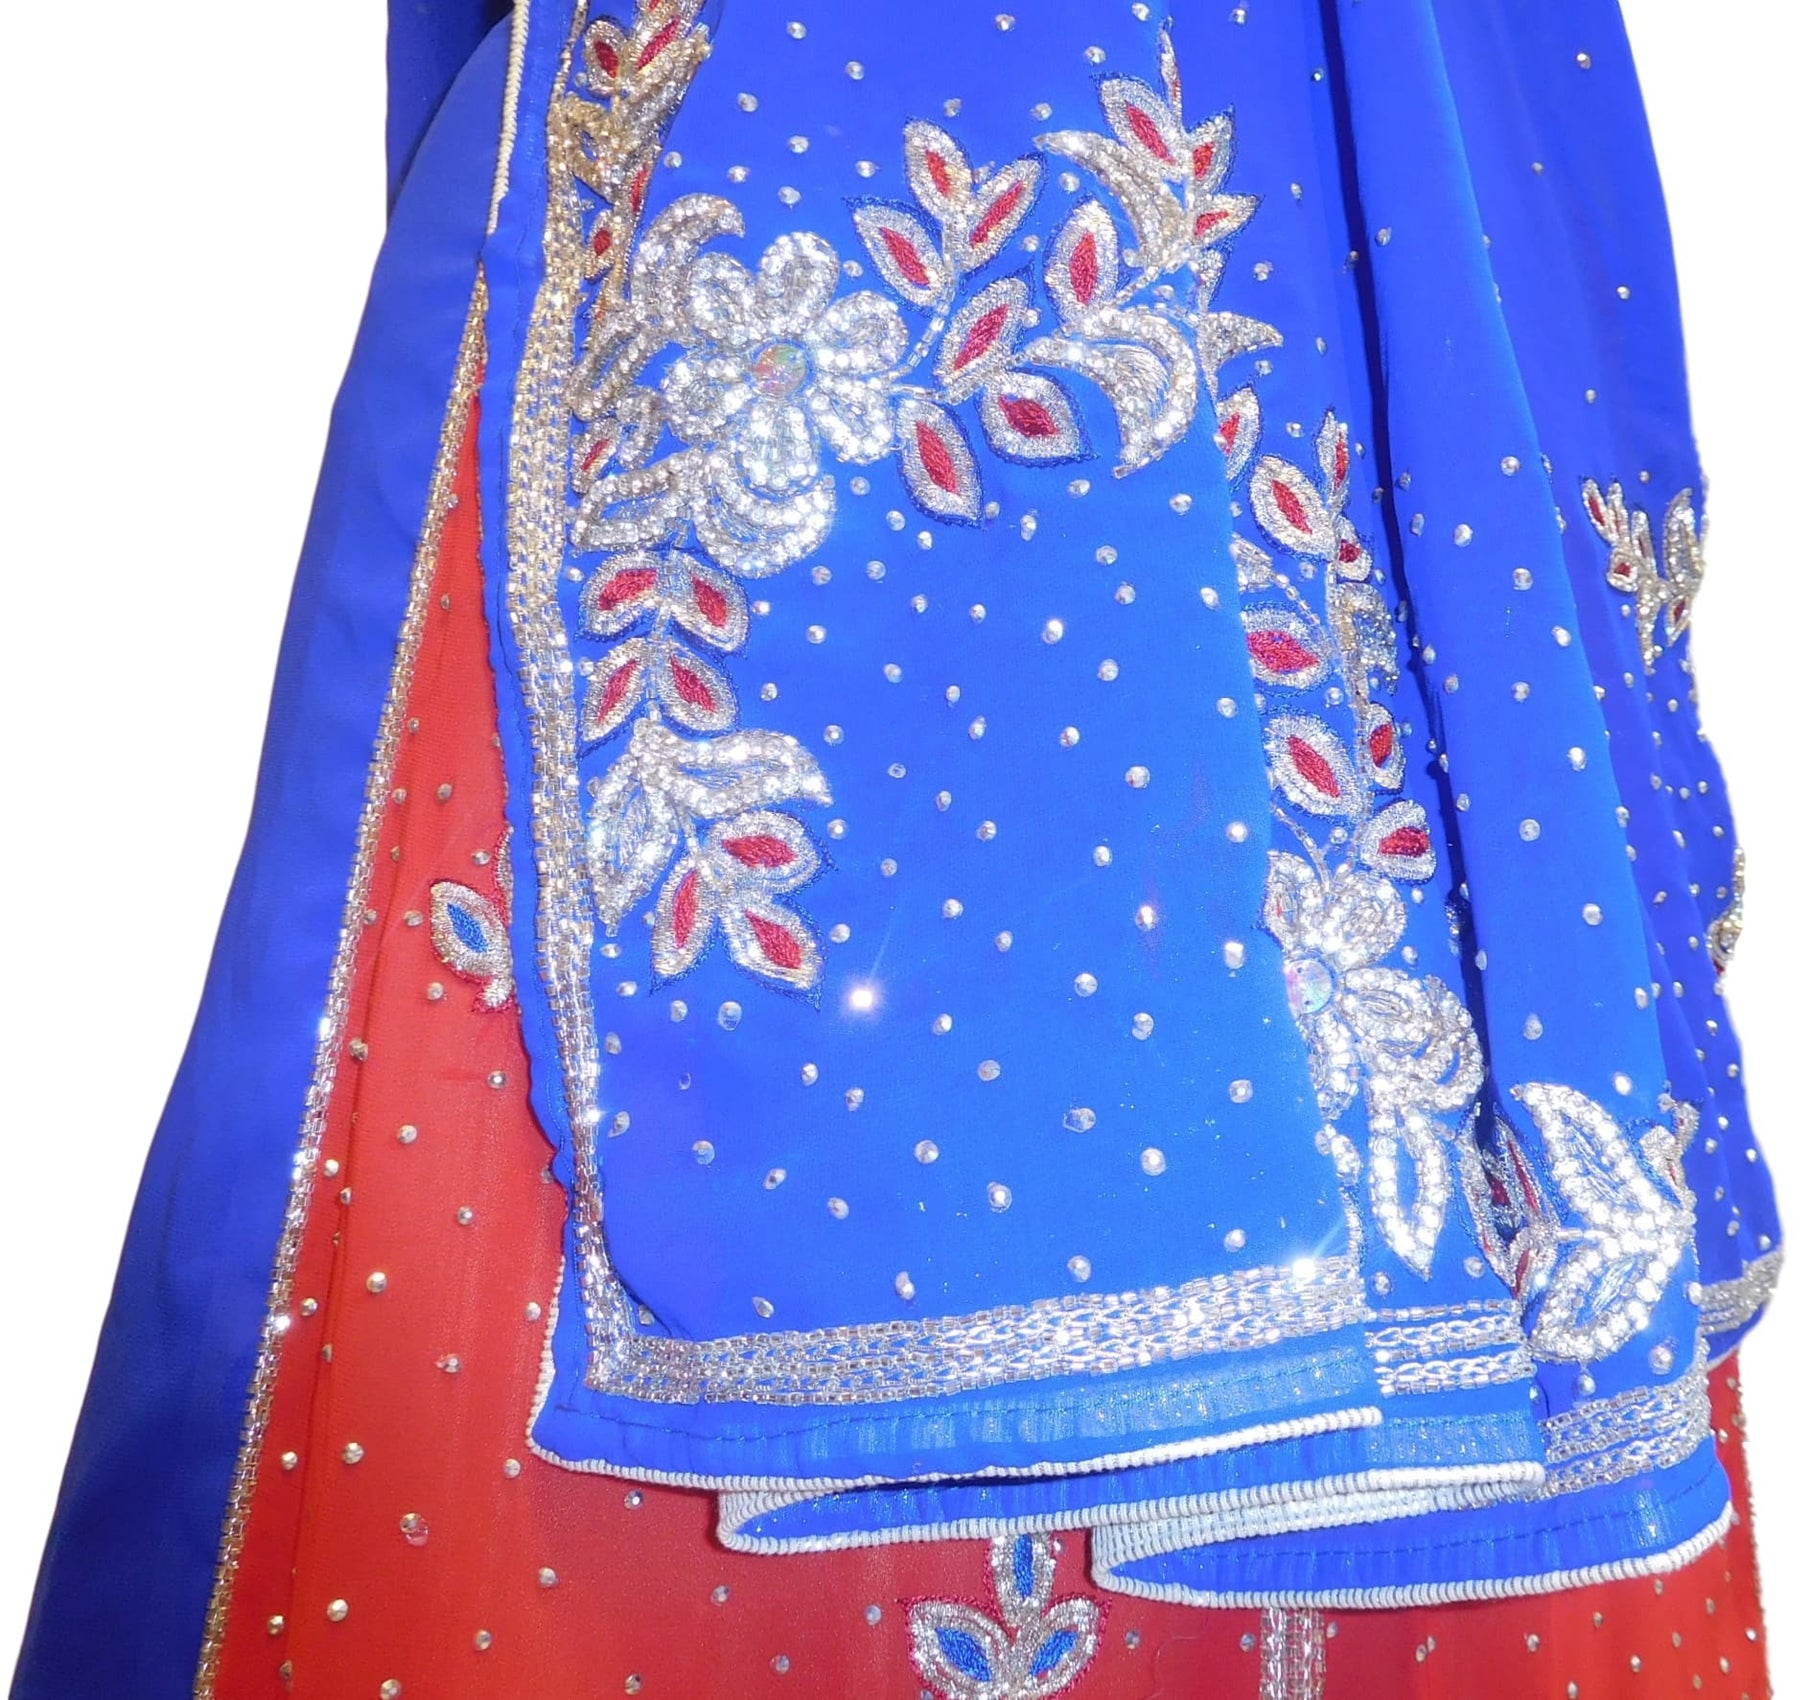 Blue & Red Designer Georgette Lahenga Style Hand Embroidery Cutdana Zari Thread Stone Work Saree Sari